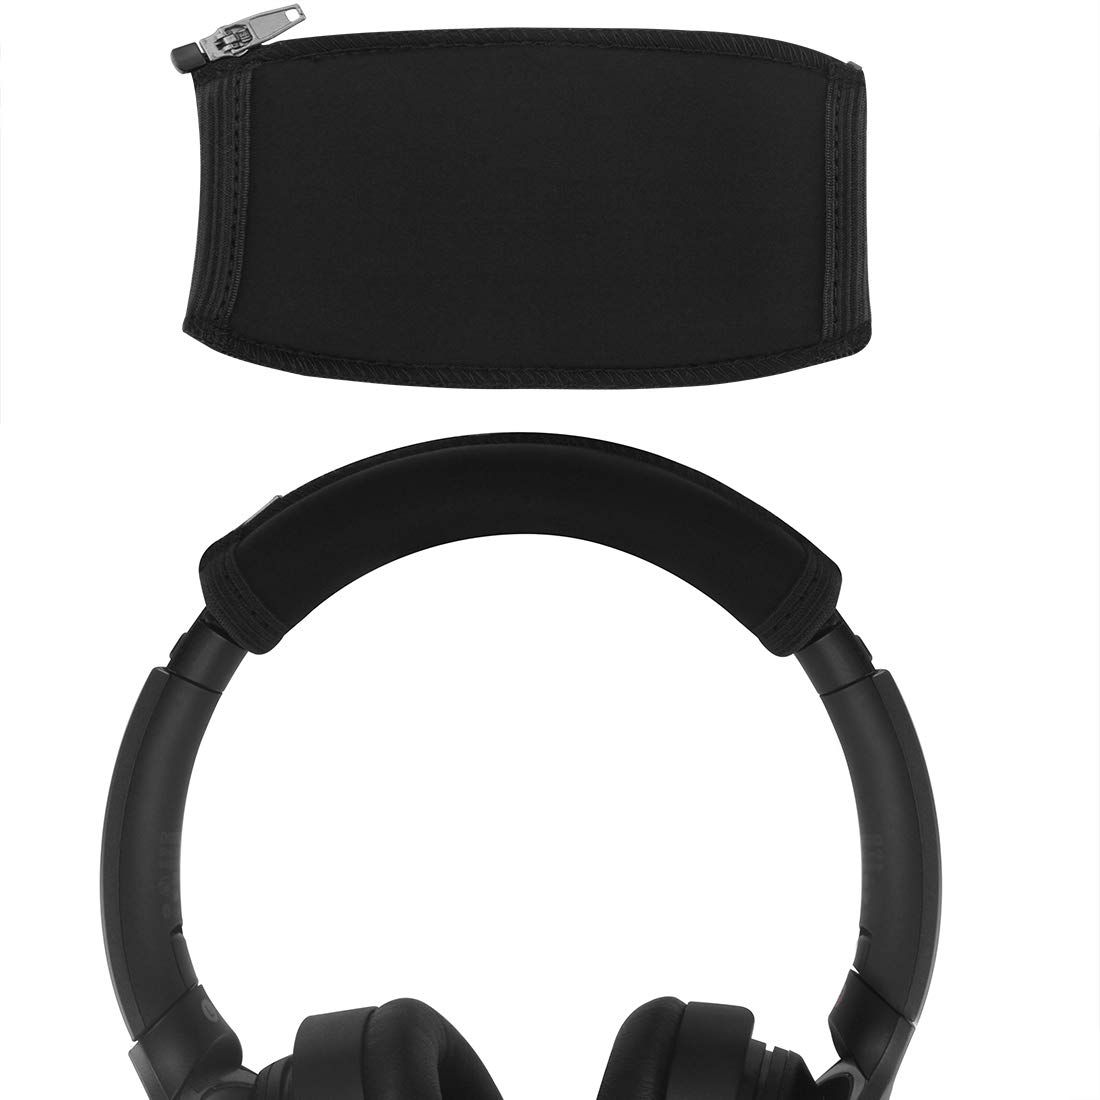 Geekria Headband Cover Compatible with Sony WH1000XM4, WH1000XM3, WH1000XM2, XB950B1, XB950N1, MDRXB950BT, MDRXB650BT, MDR1000X Headphones/Headband Protector/Easy Installation